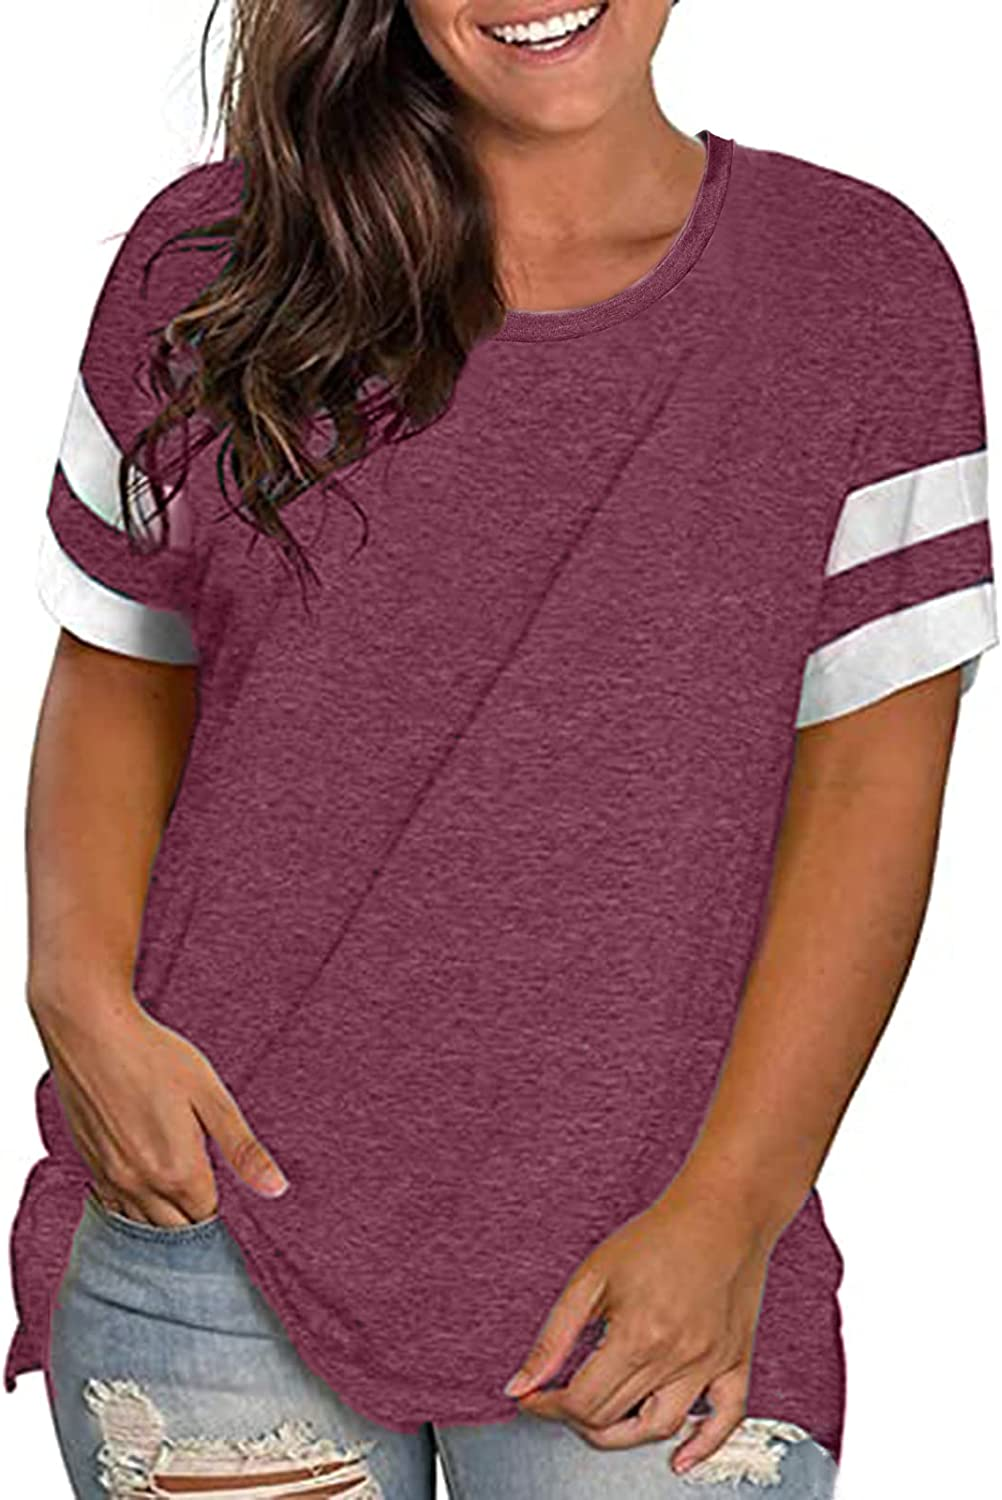 Womens Plus-Size Summer Tops Crew Neck T Shirts Striped Short Sleeve Tunics Causal Tees Blouses